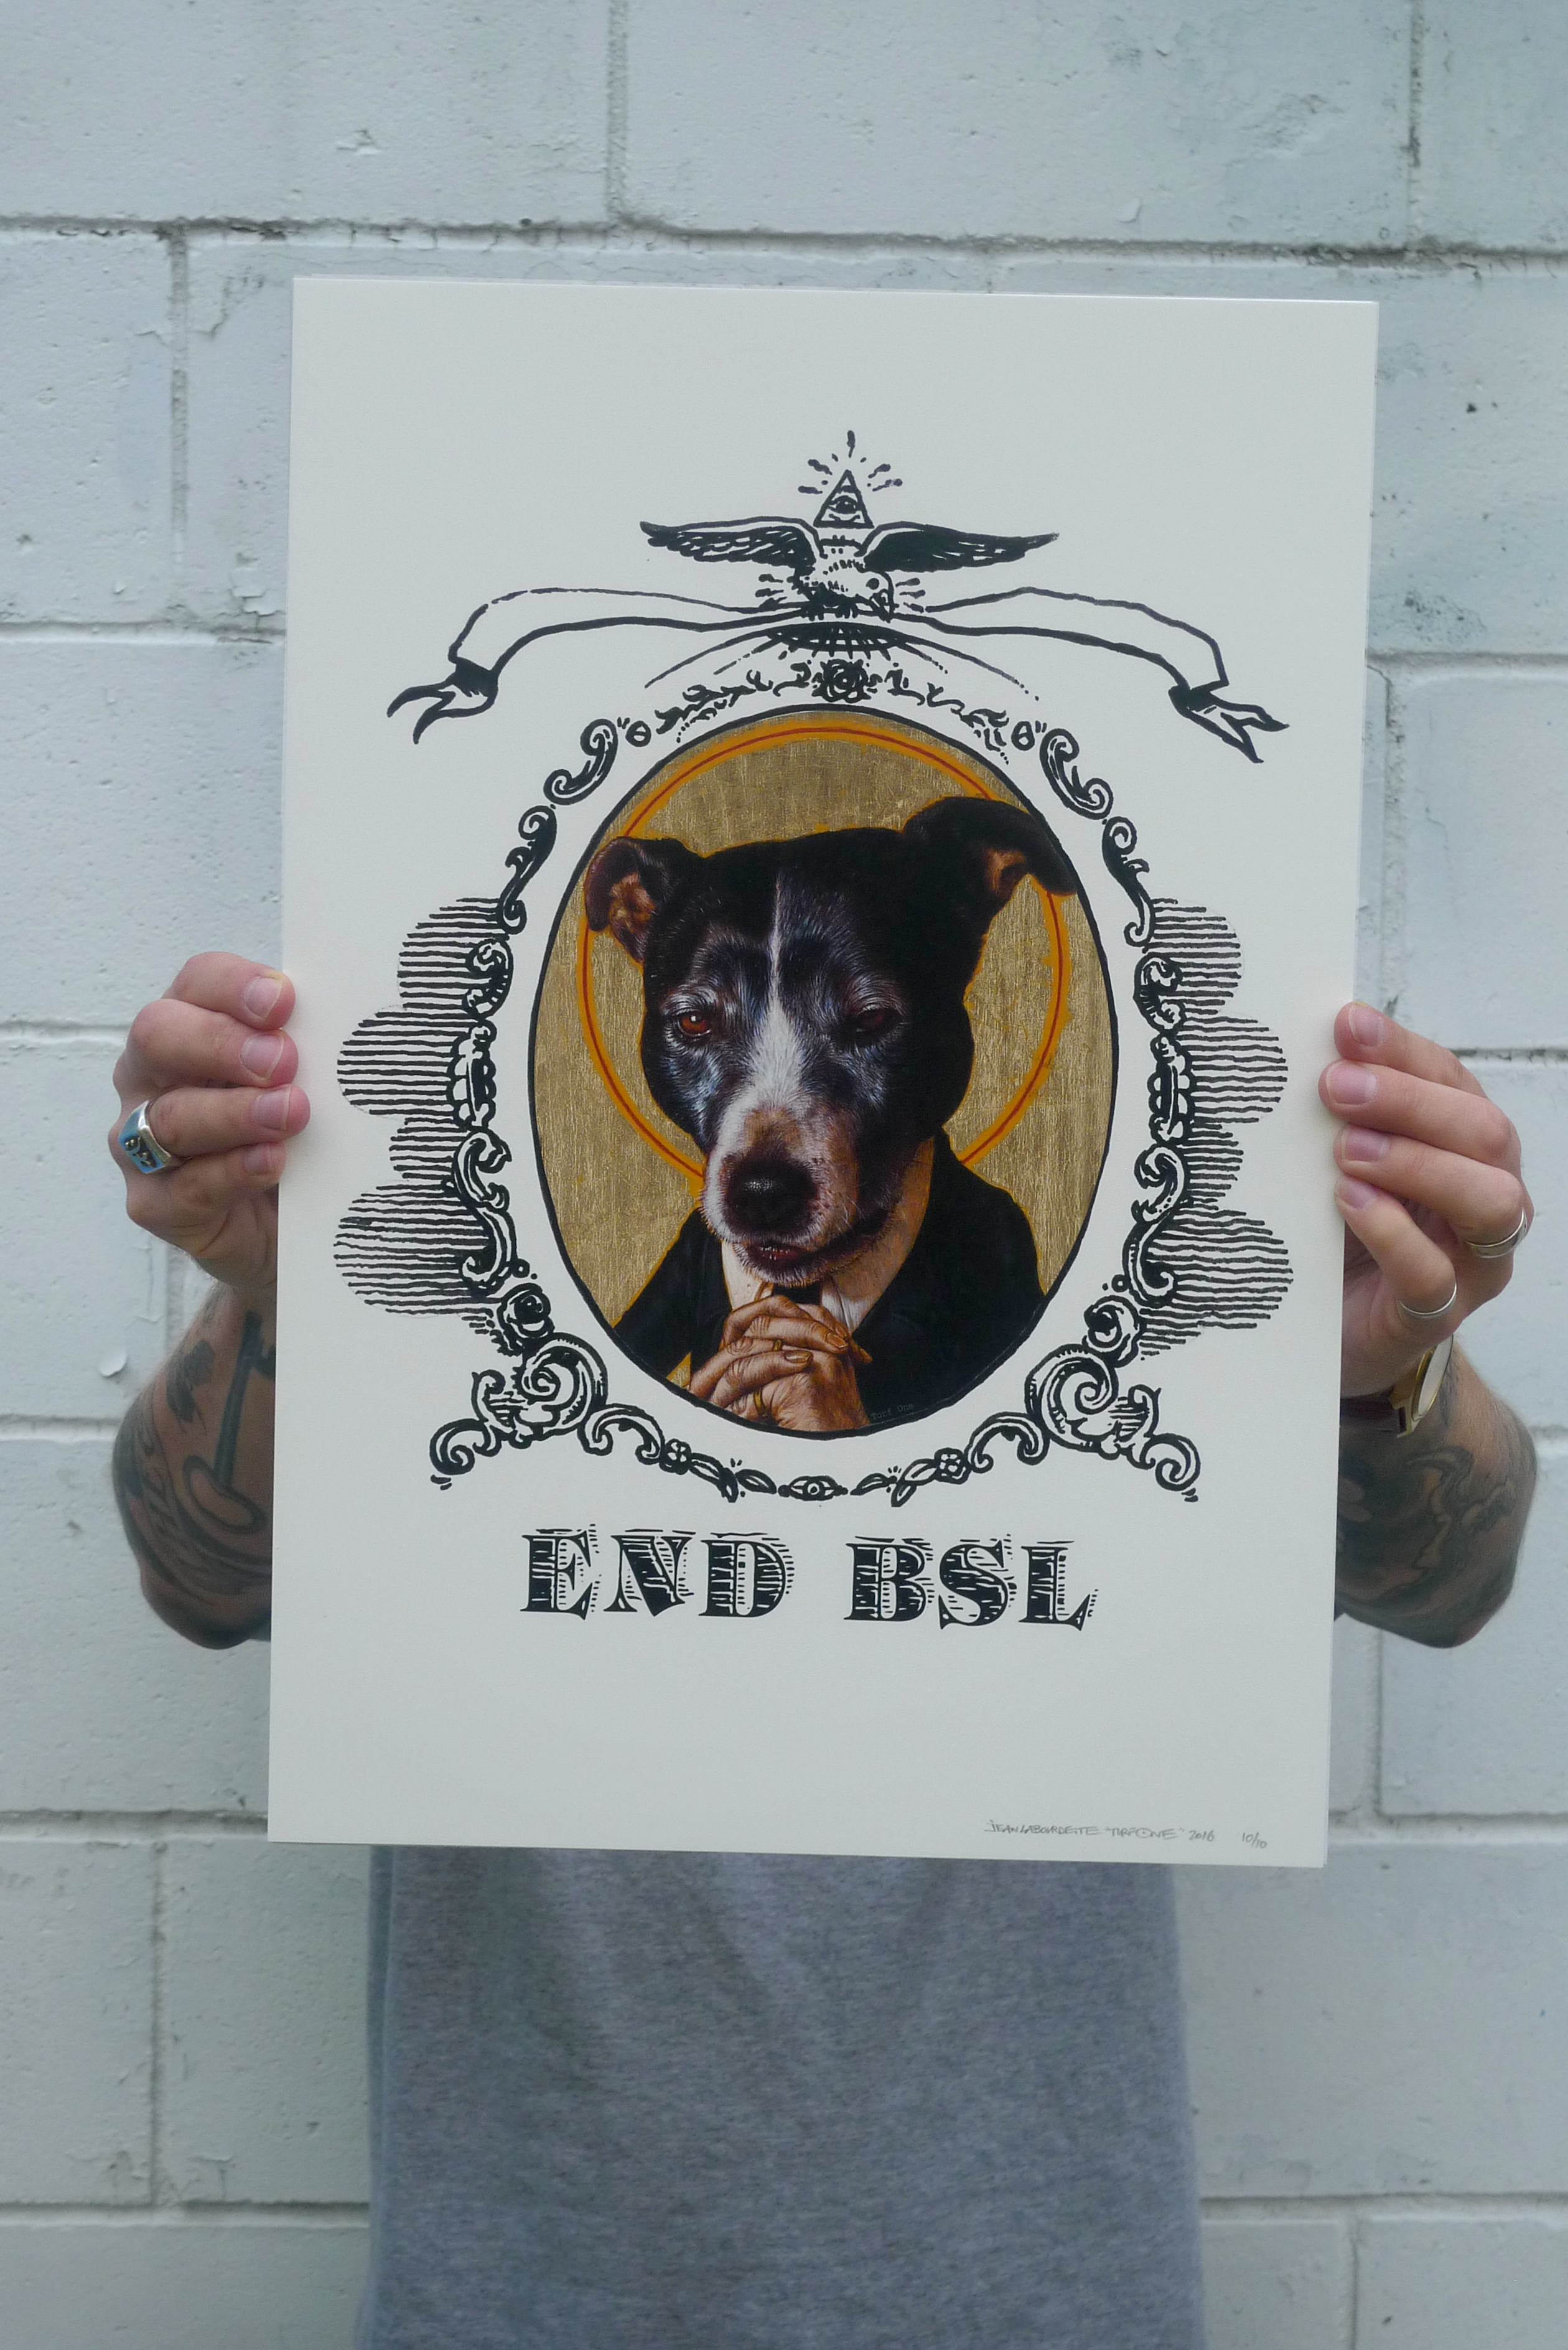 End BSL promo good